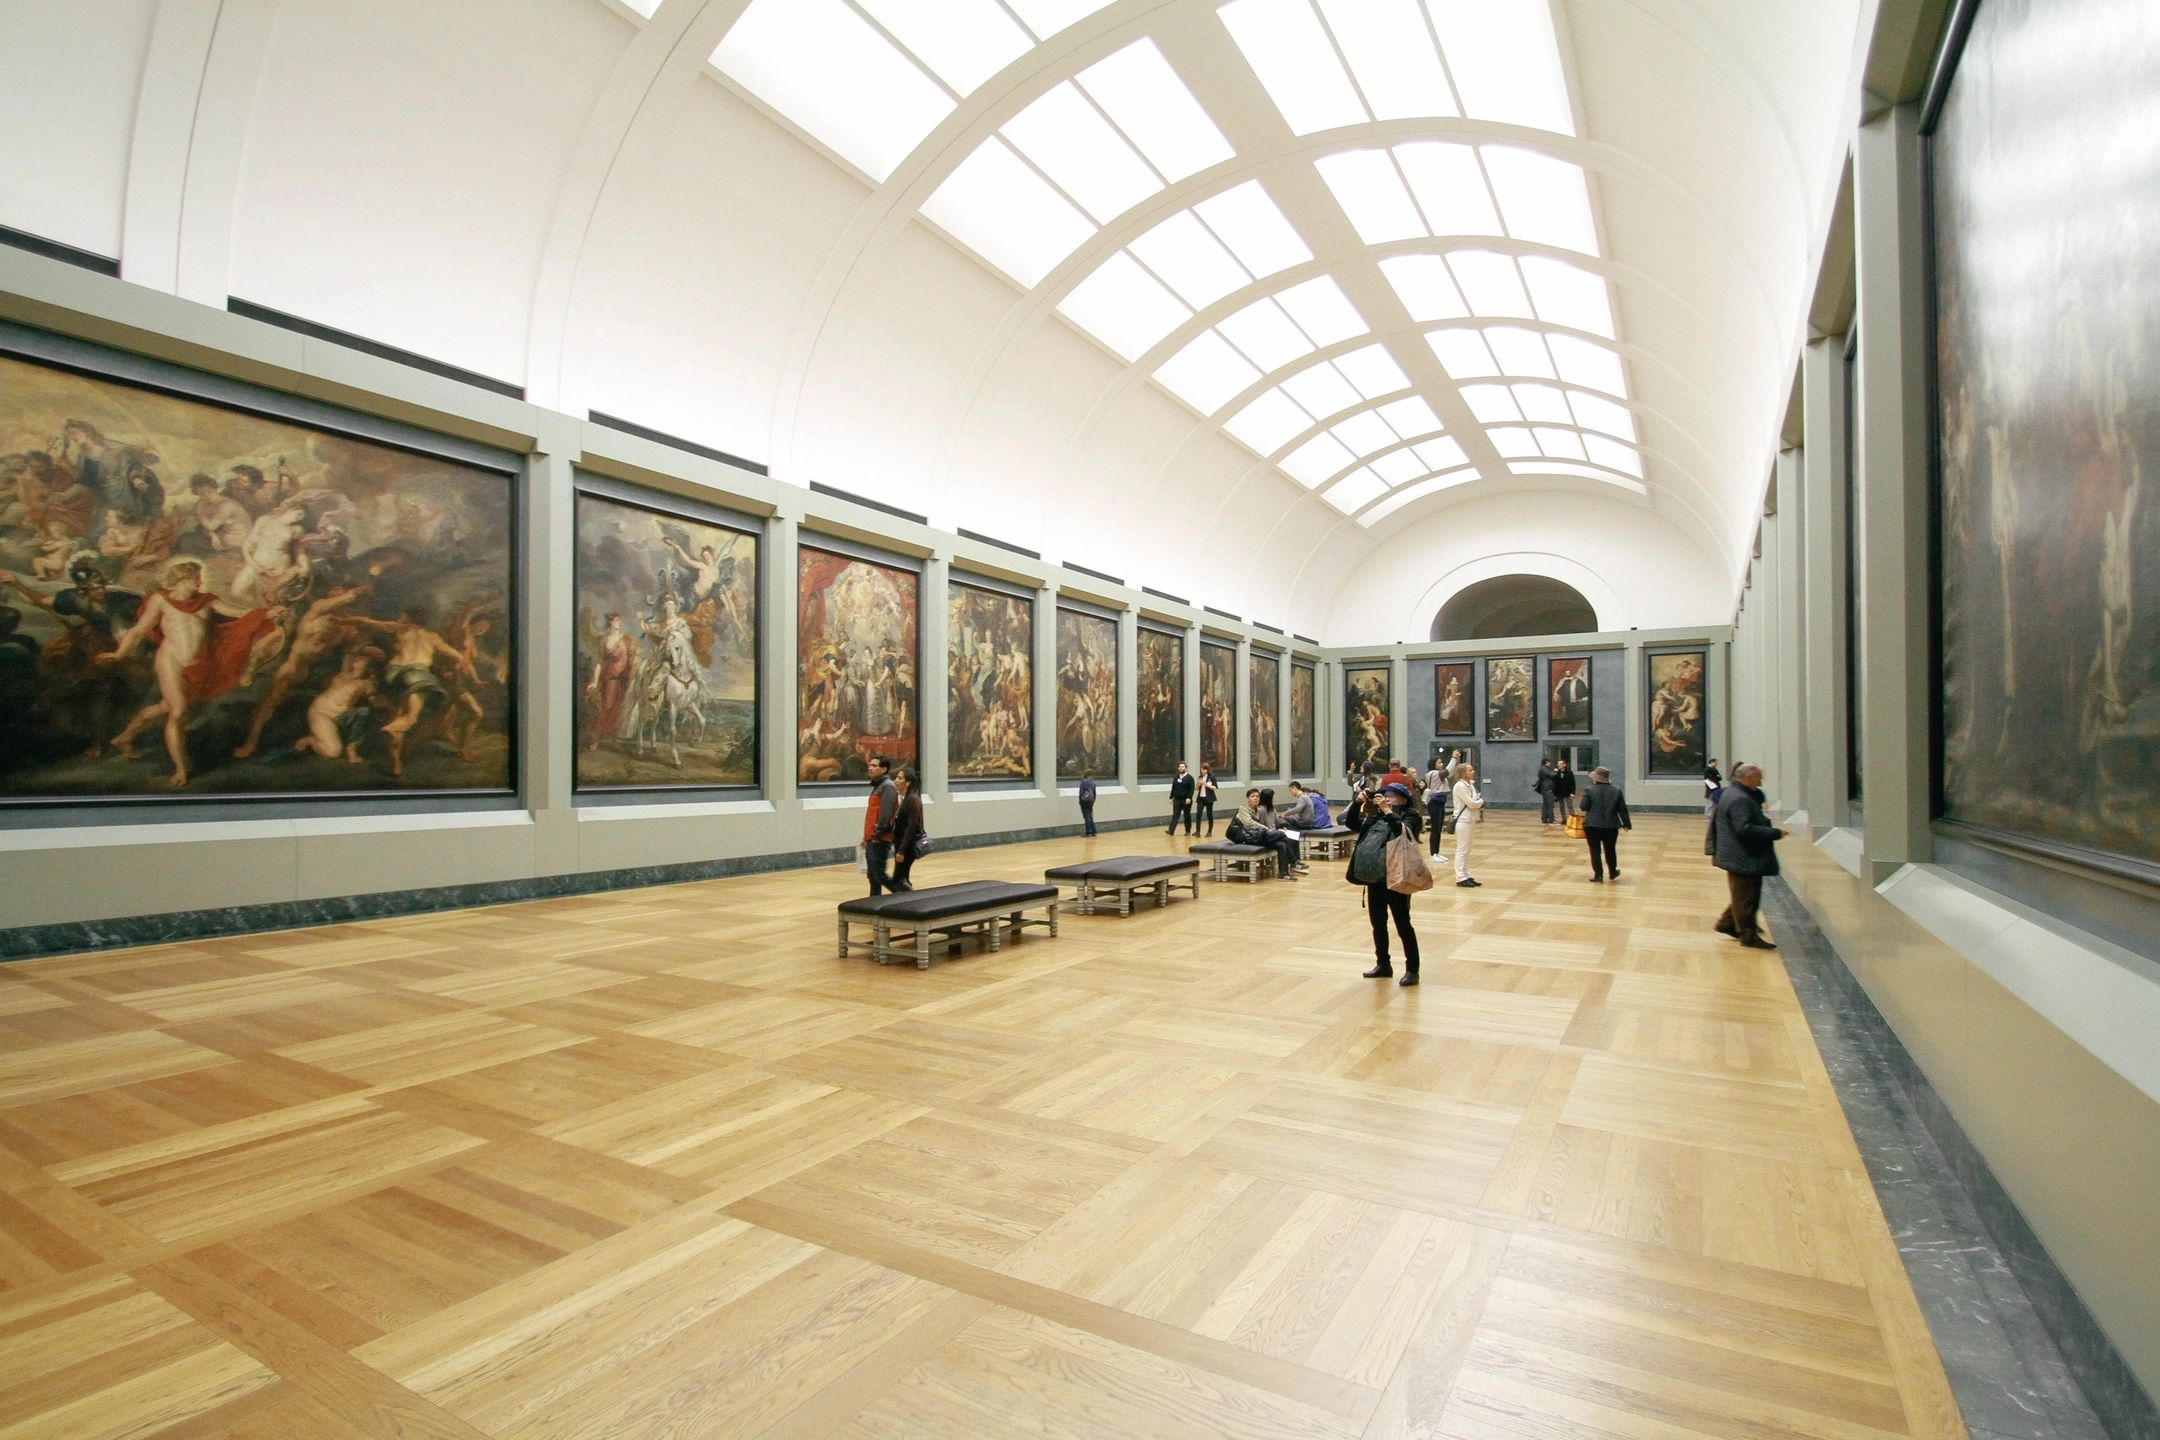 The Best Museums to Take An Artboy You'll Ghost in a Month